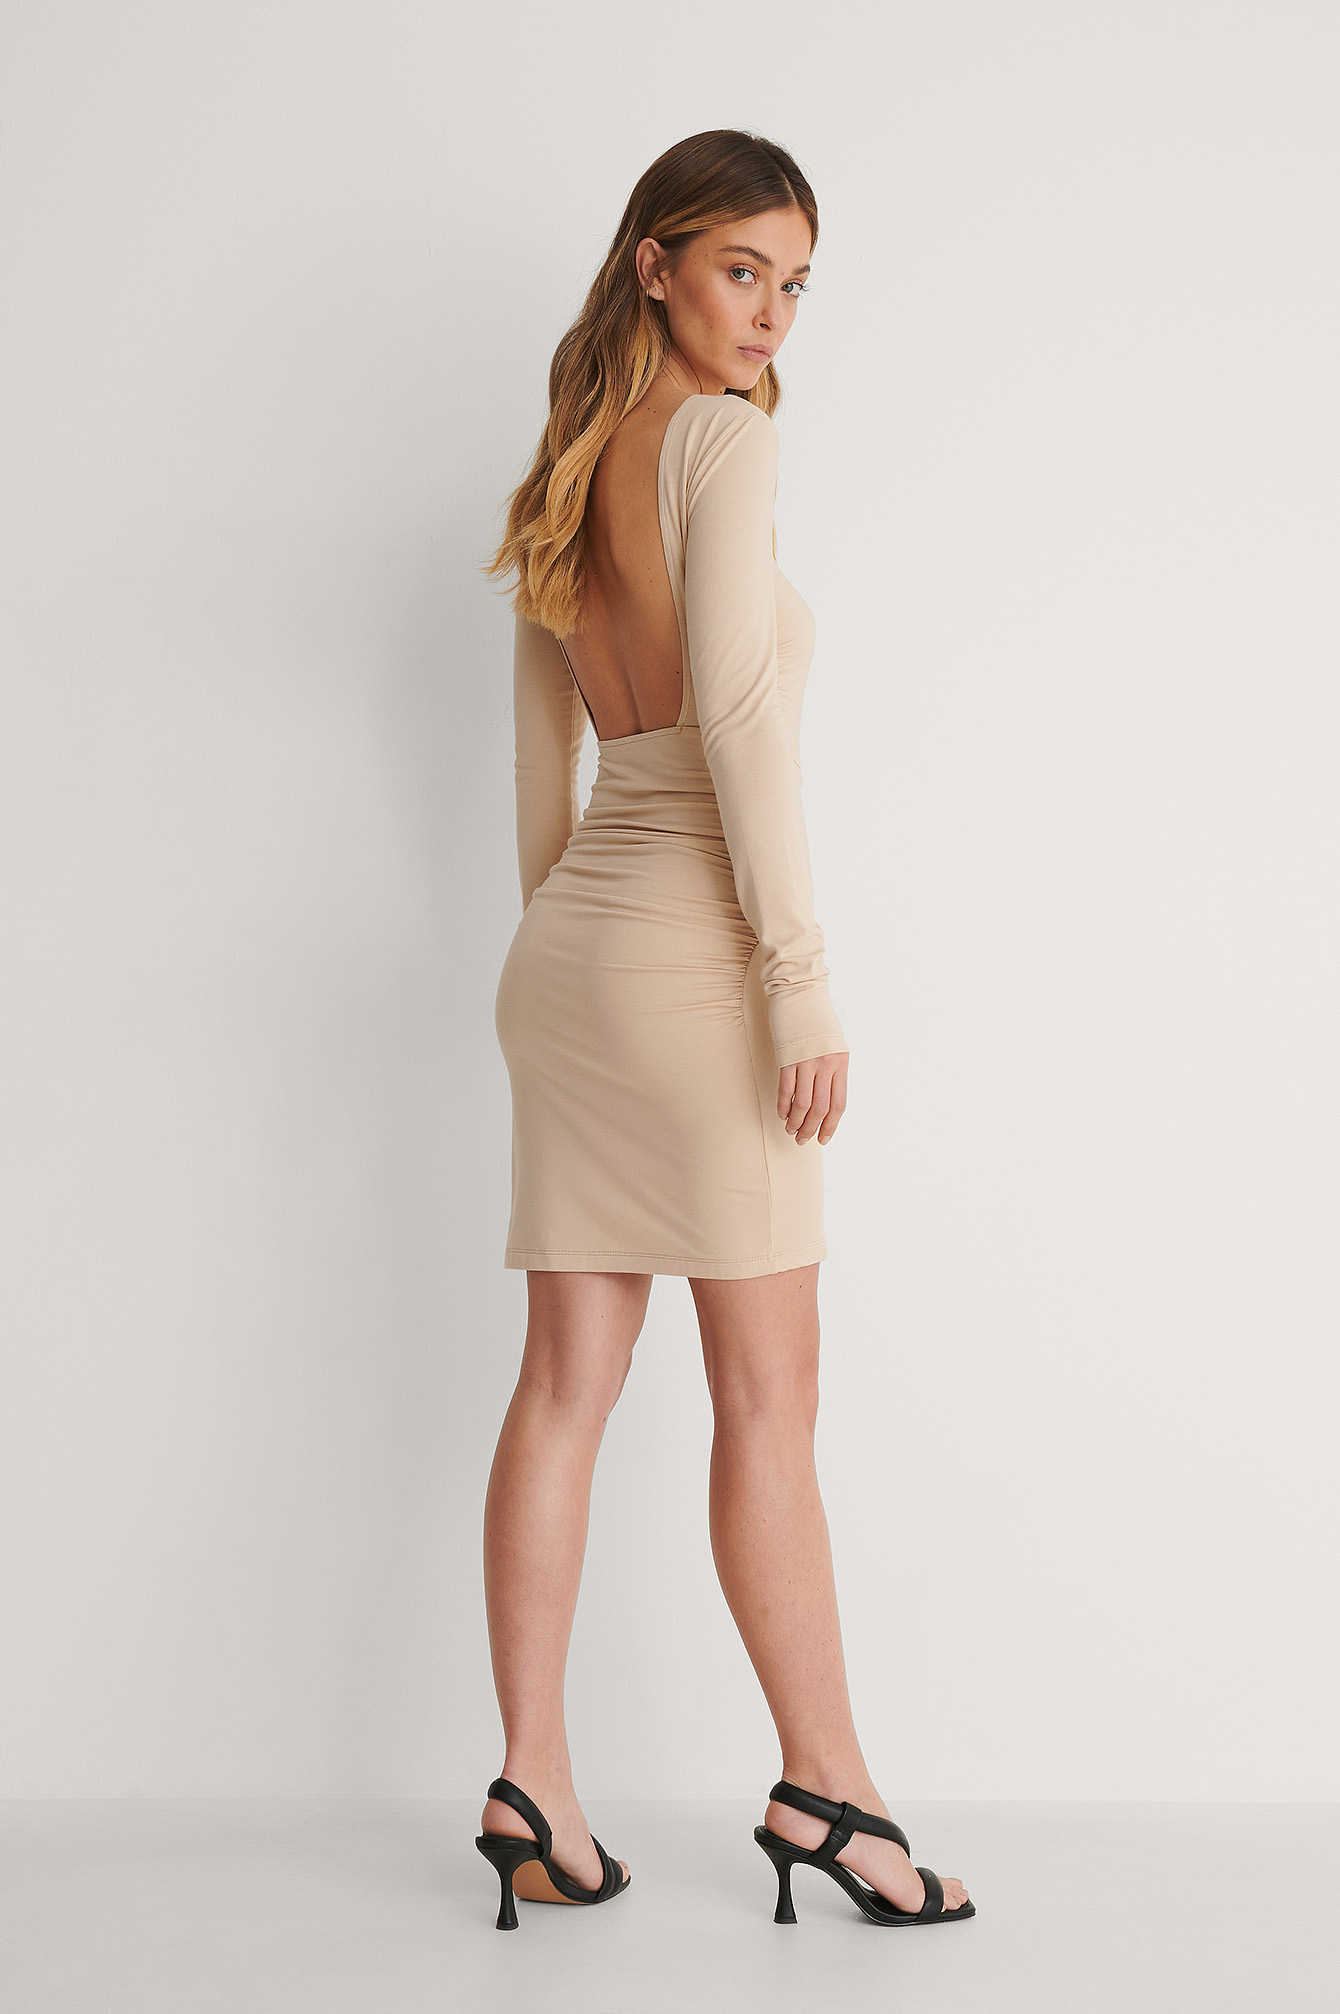 Beige Robe Dos Ouvert